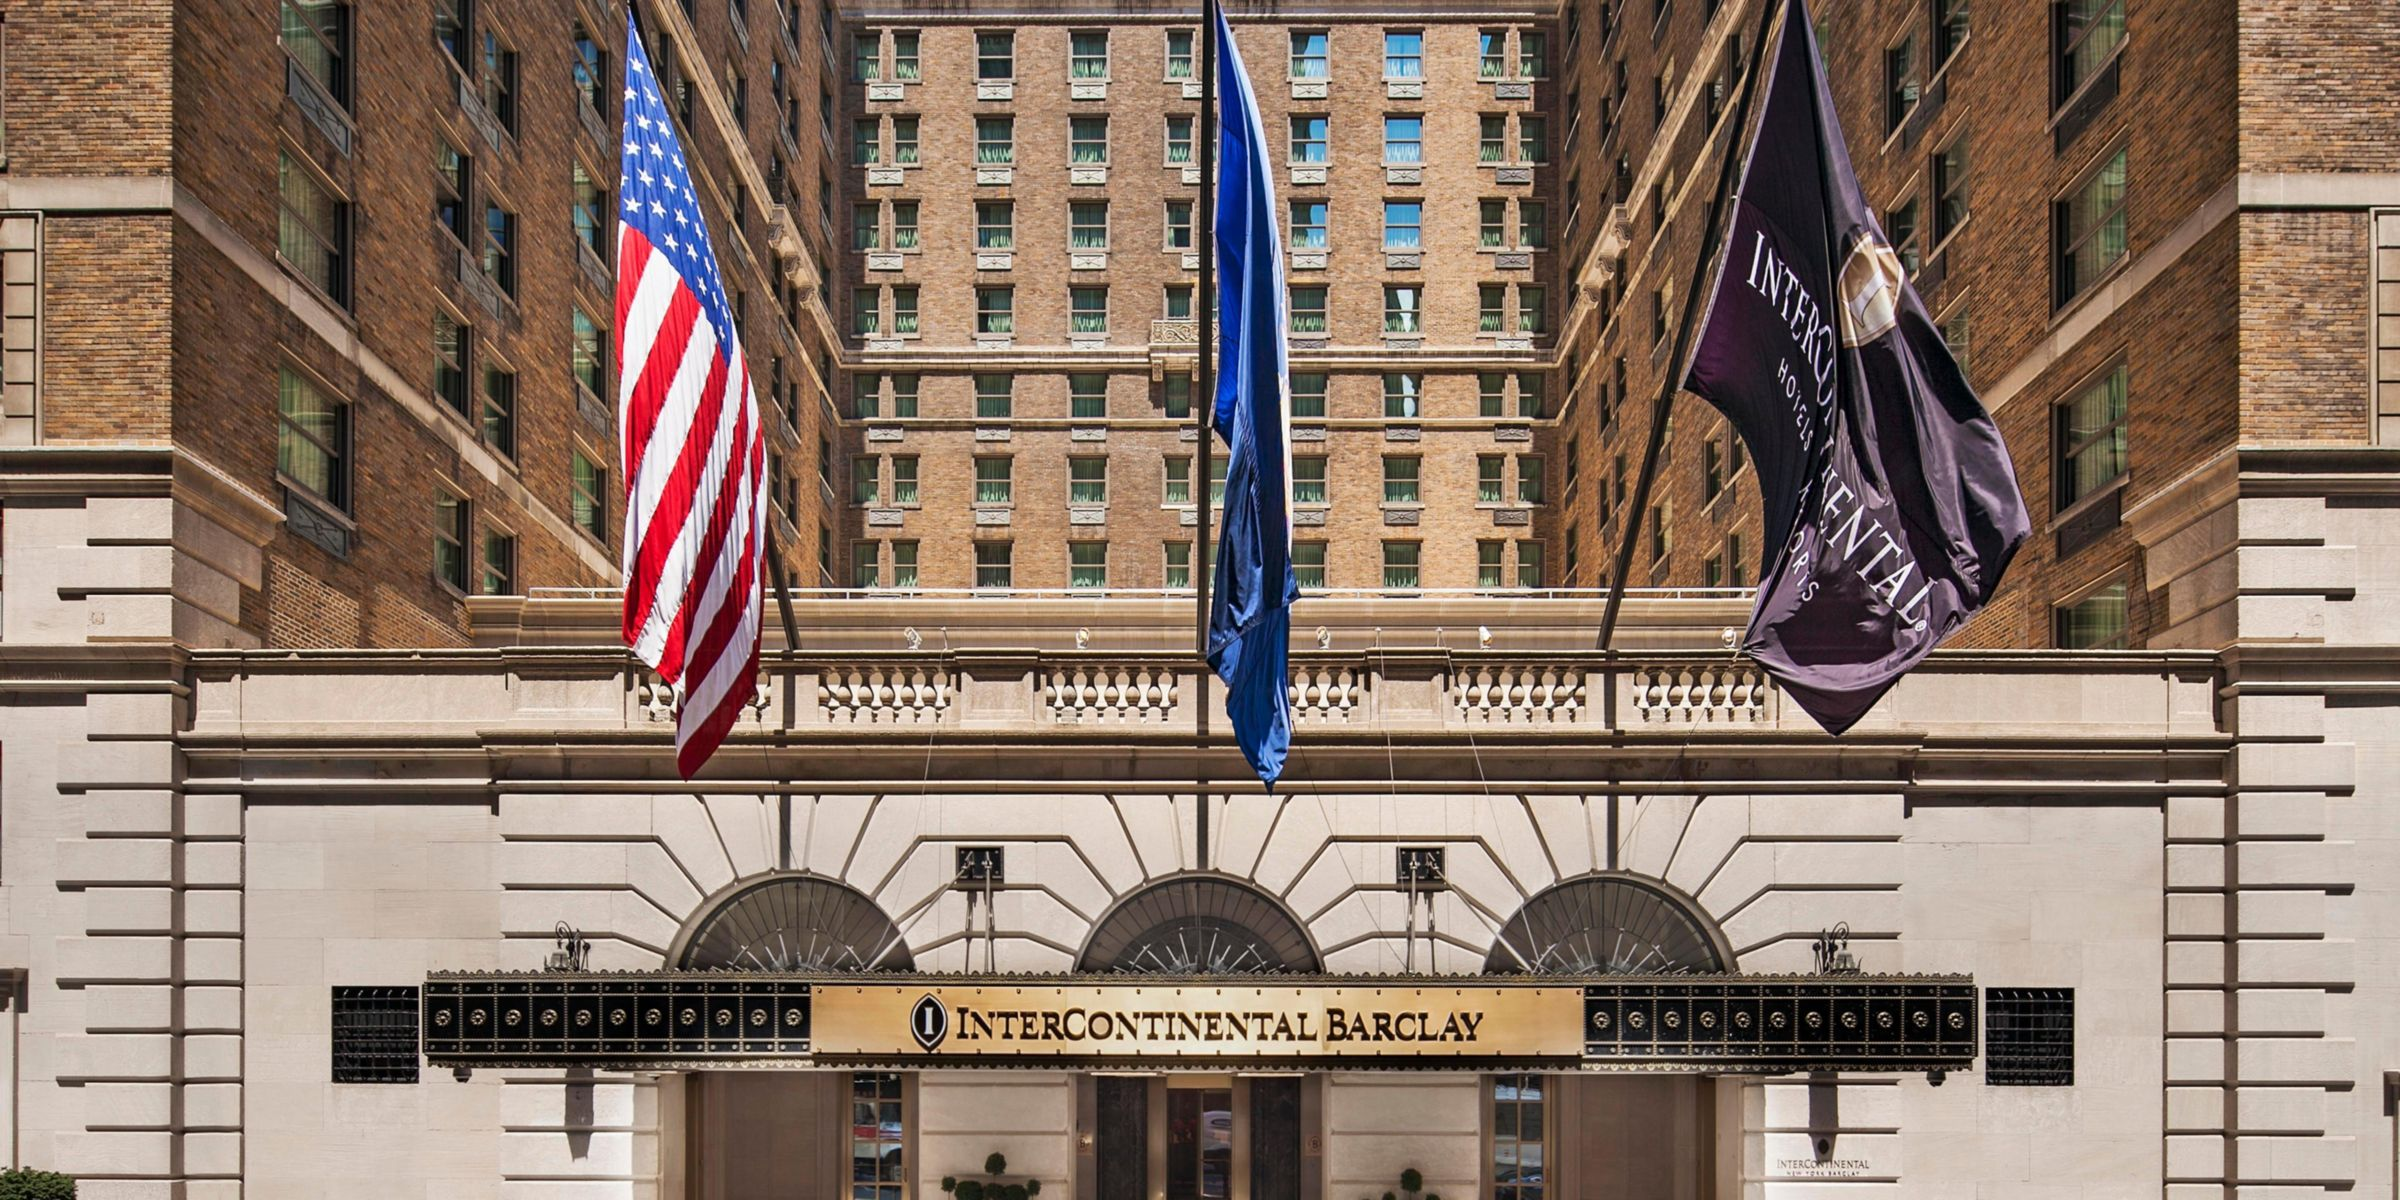 The Intercontinental New York Barclay